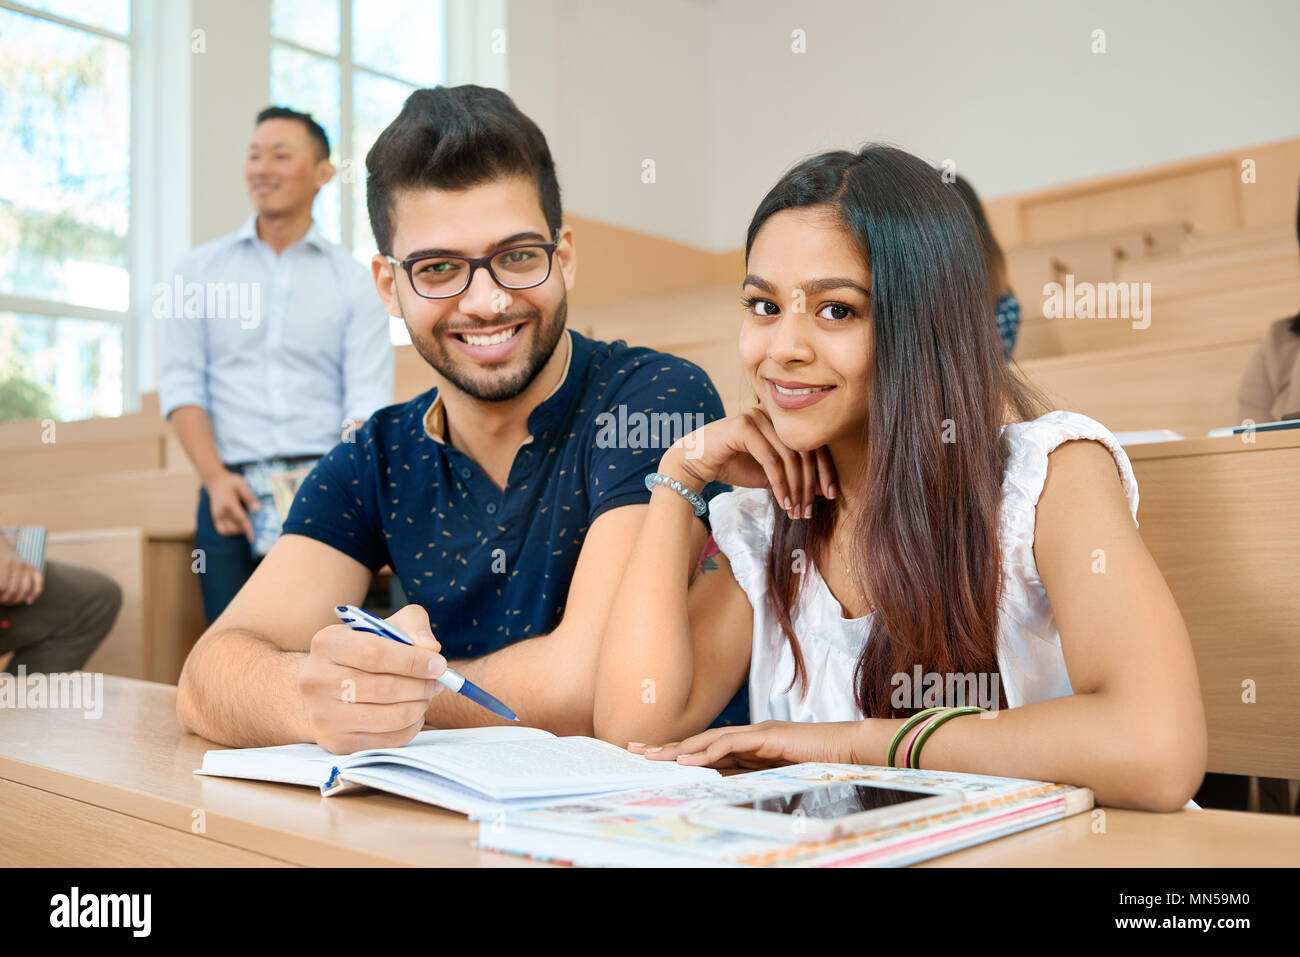 Groupmates coworking for educational scientific project and prepearing for exams, looking at camera in modern spacy university classroom with cascade wooden desks. Looking satisfied, concentrated. - Stock Image